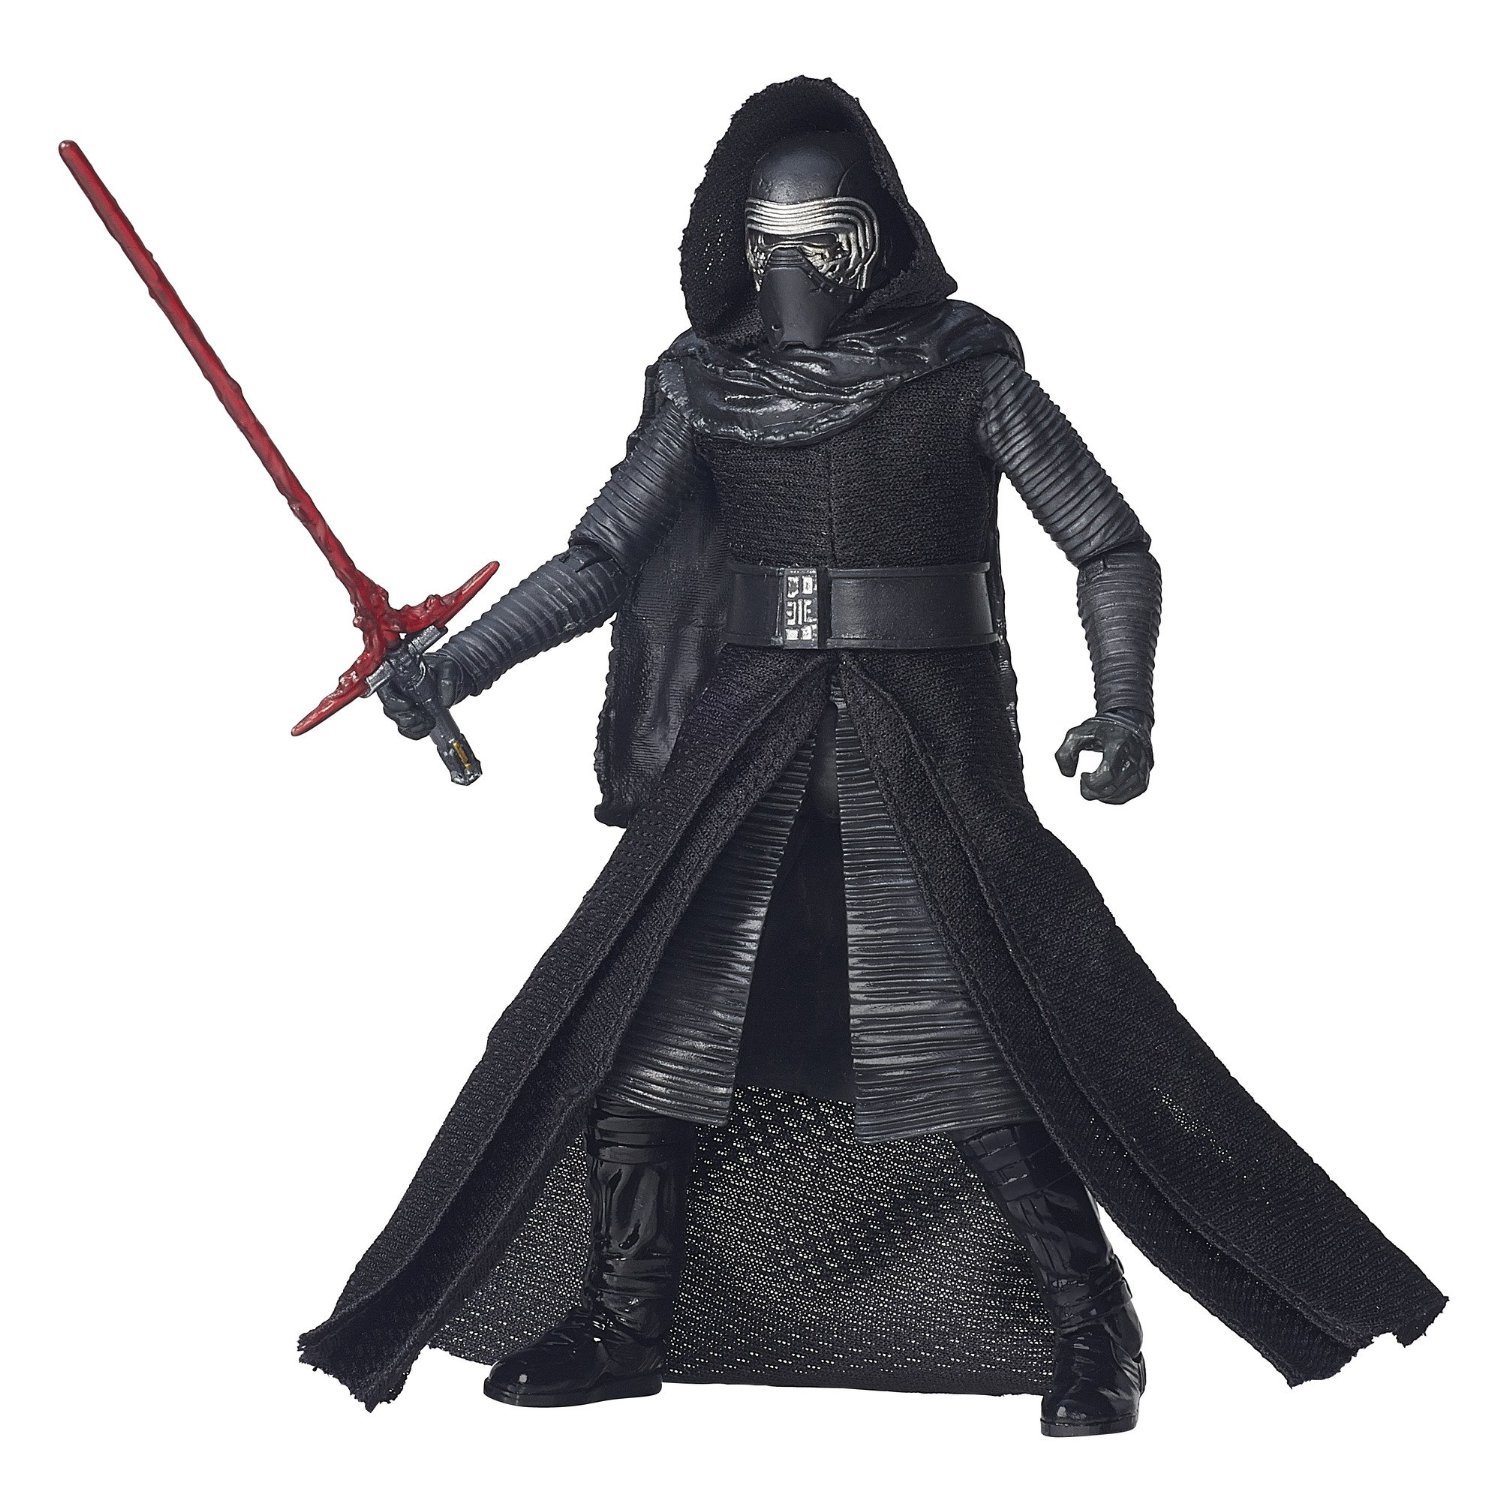 Hasbro Star Wars The Black Series 6″ Kylo Ren In Stock At Amazon For $17.97